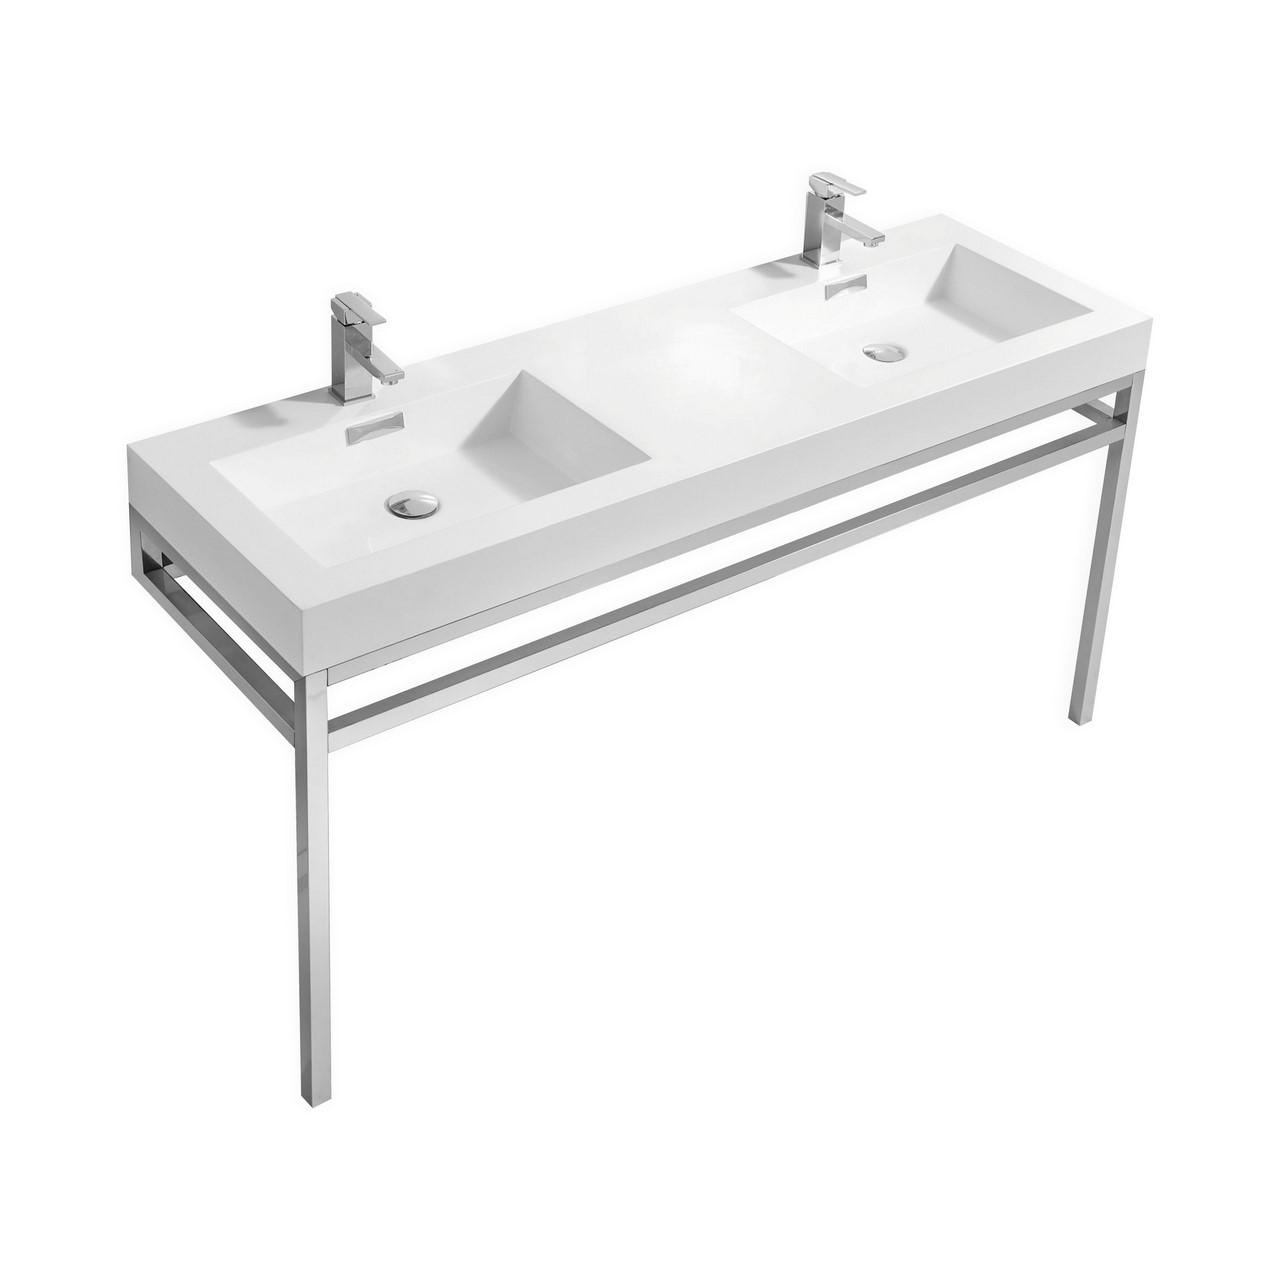 Haus 60 Quot Double Sink Stainless Steel Console W White